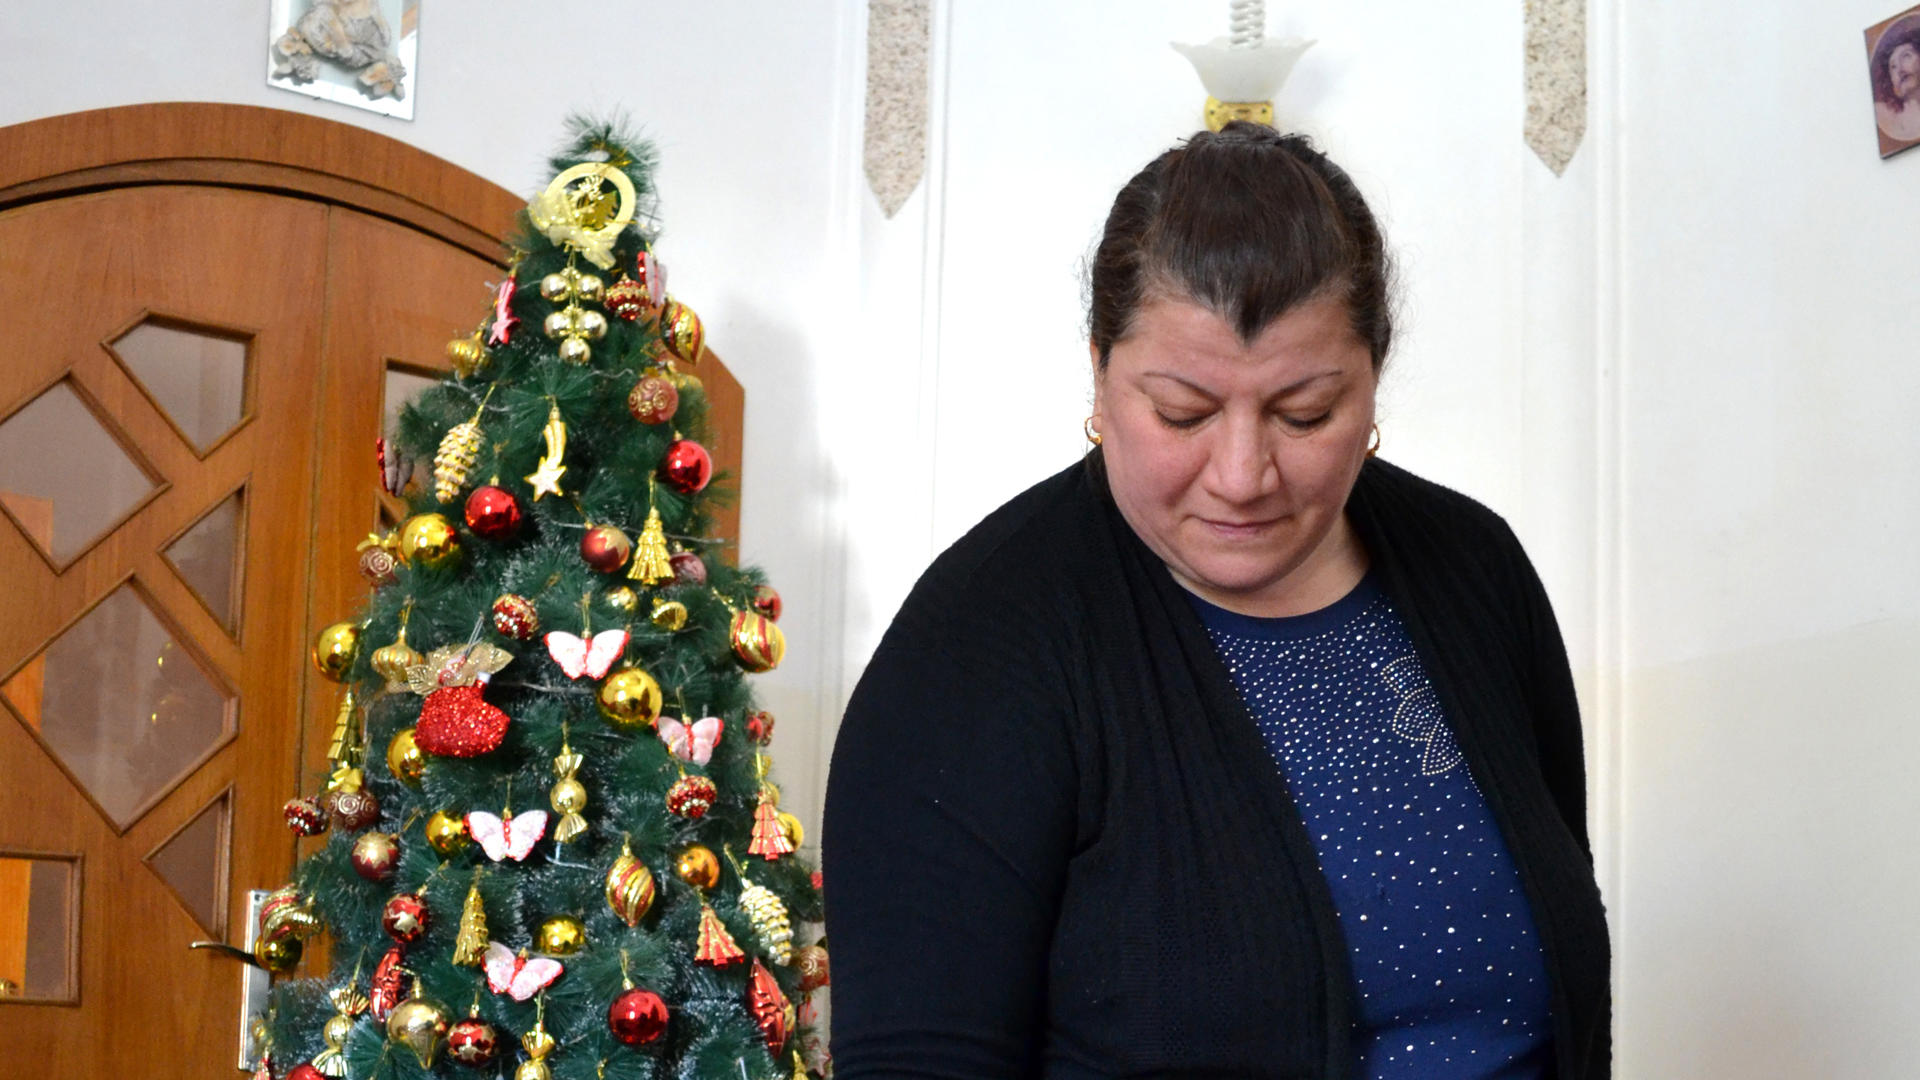 Linda Abid Younis with her Christmas tree